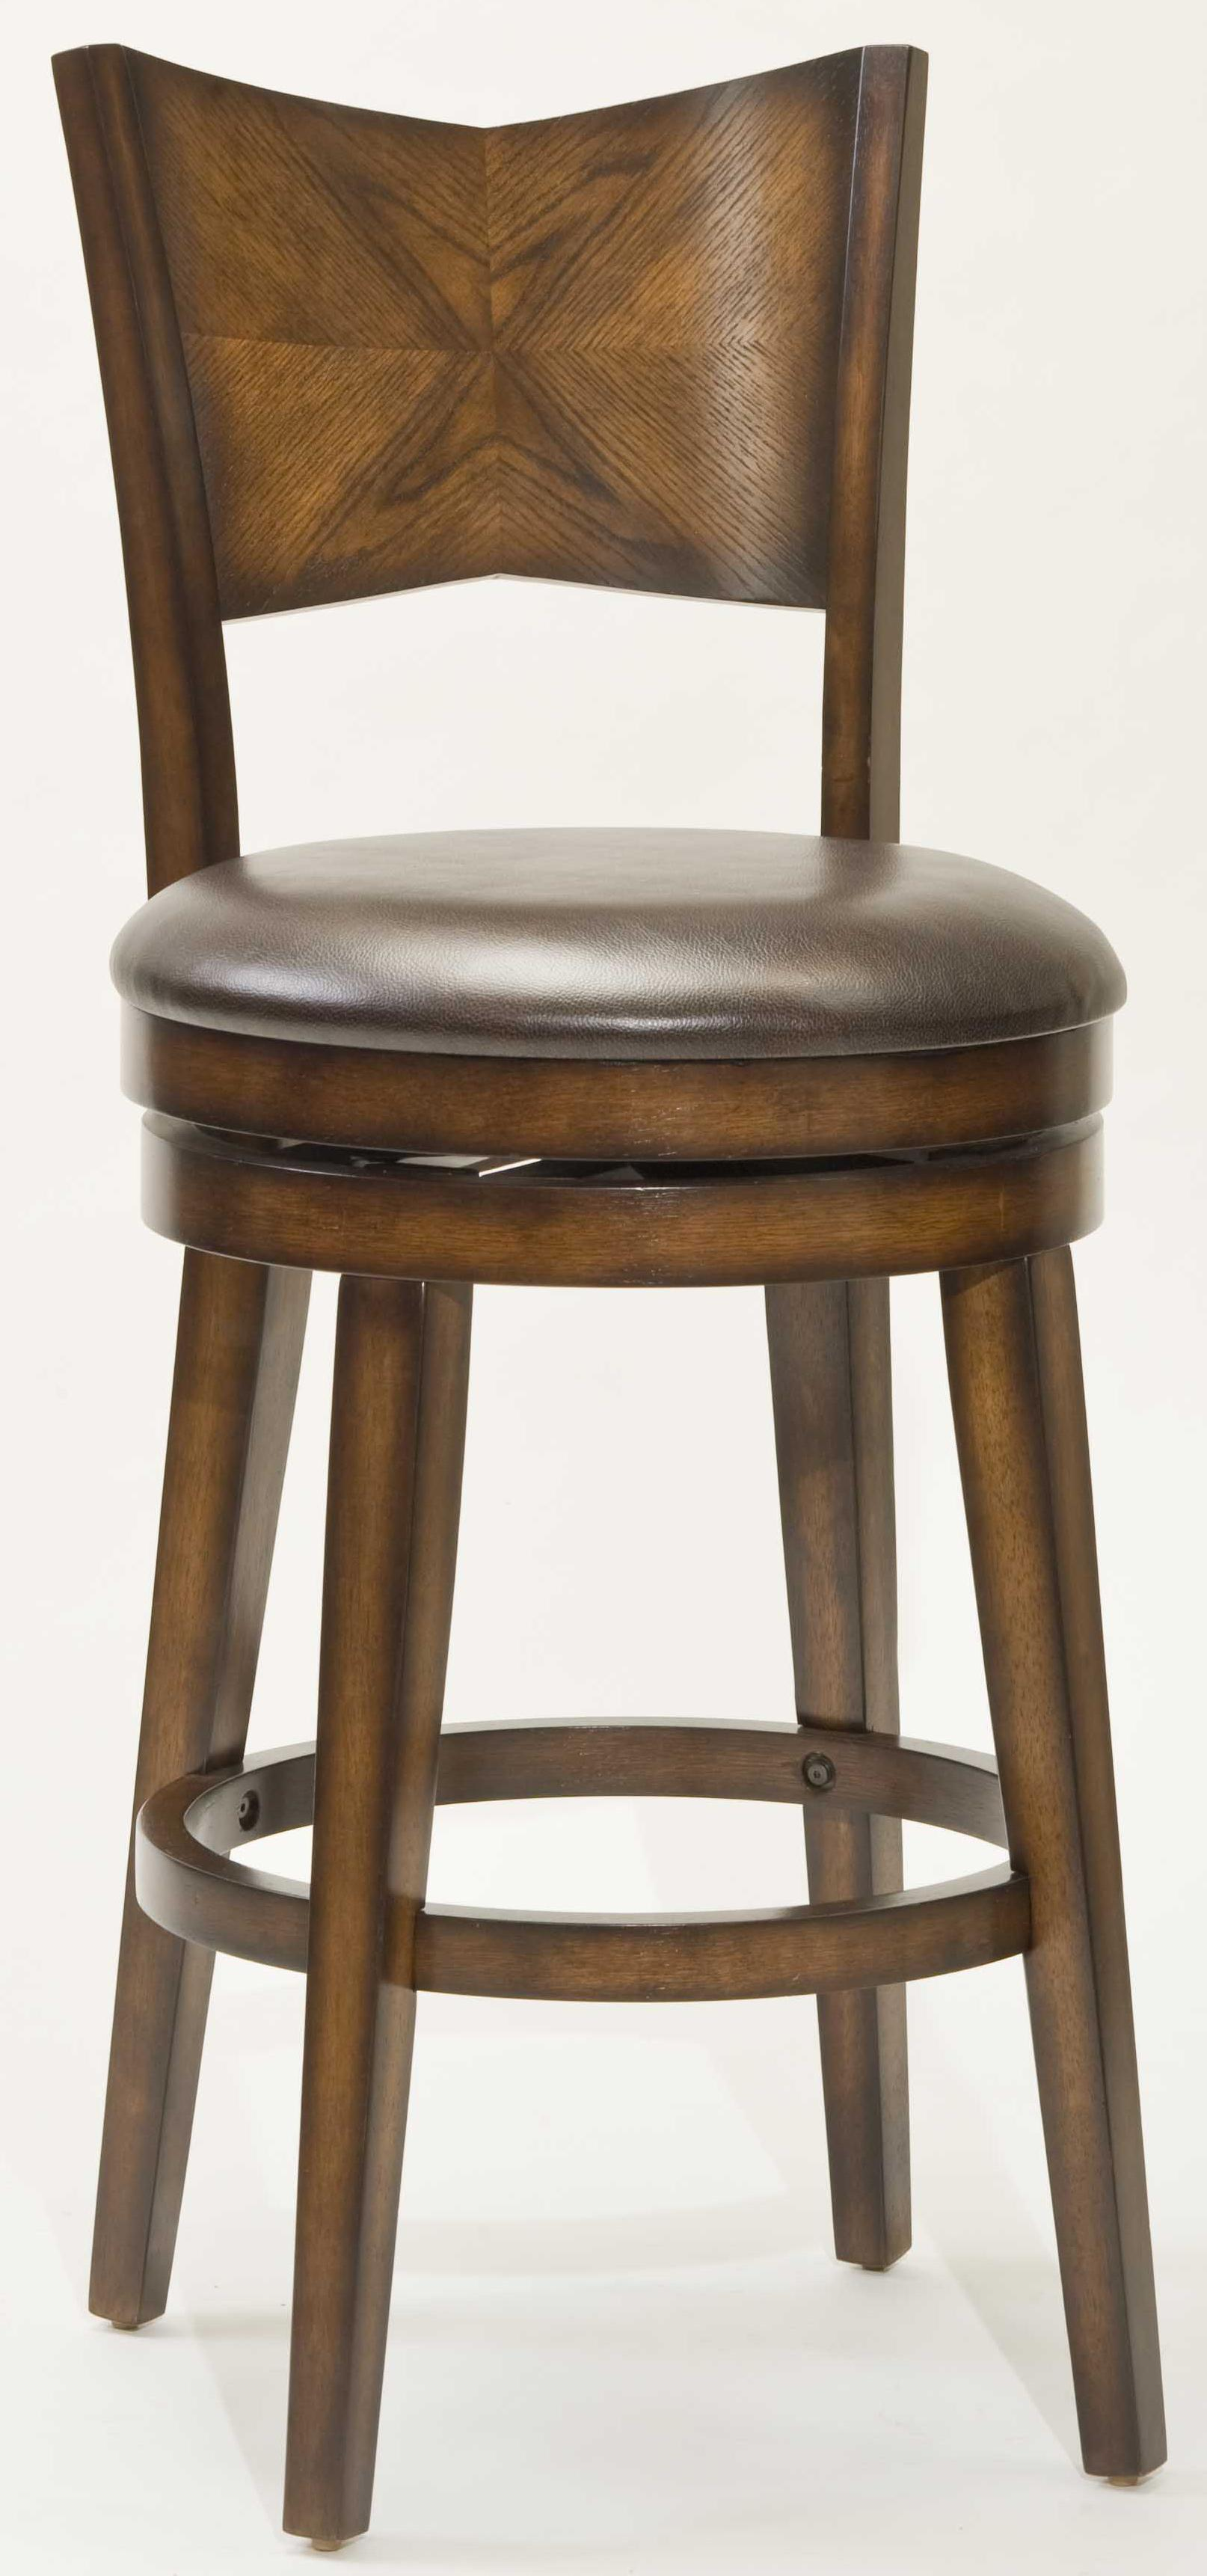 Hillsdale Wood Stools 4477826 265 Counter Height